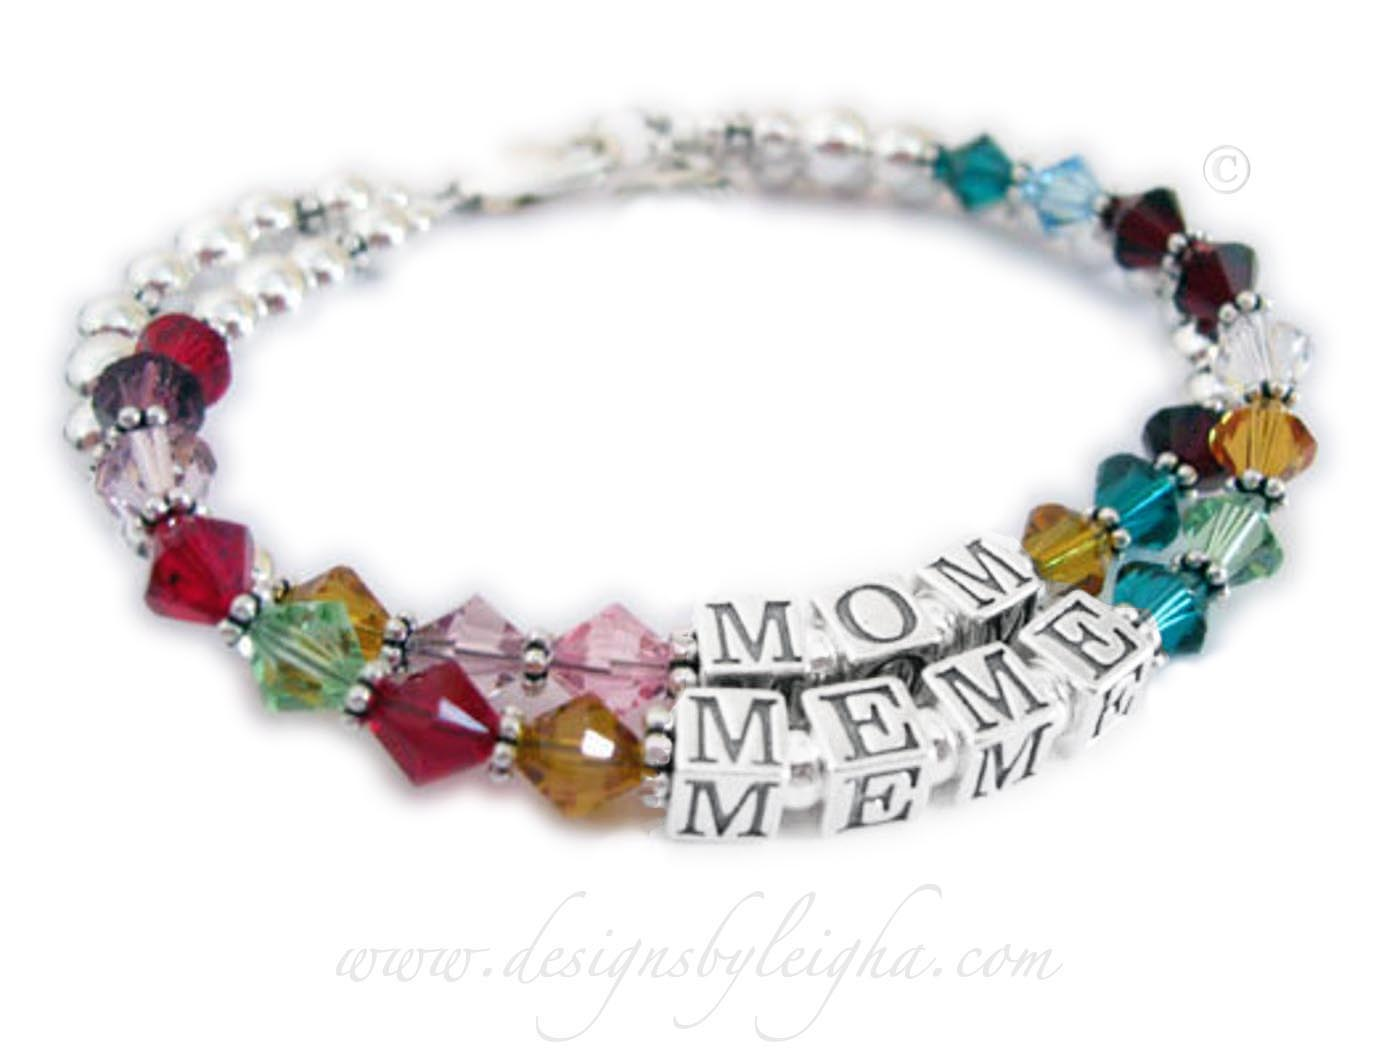 Mom and Meme Birthstone BraceletThis is a 2 string bracelet with a lobster claw clasp. The first string says MOM with her kids' birthstones. The second string says MEME with her grandkids' birthstones. They added a Beaded Heart charm to their order.